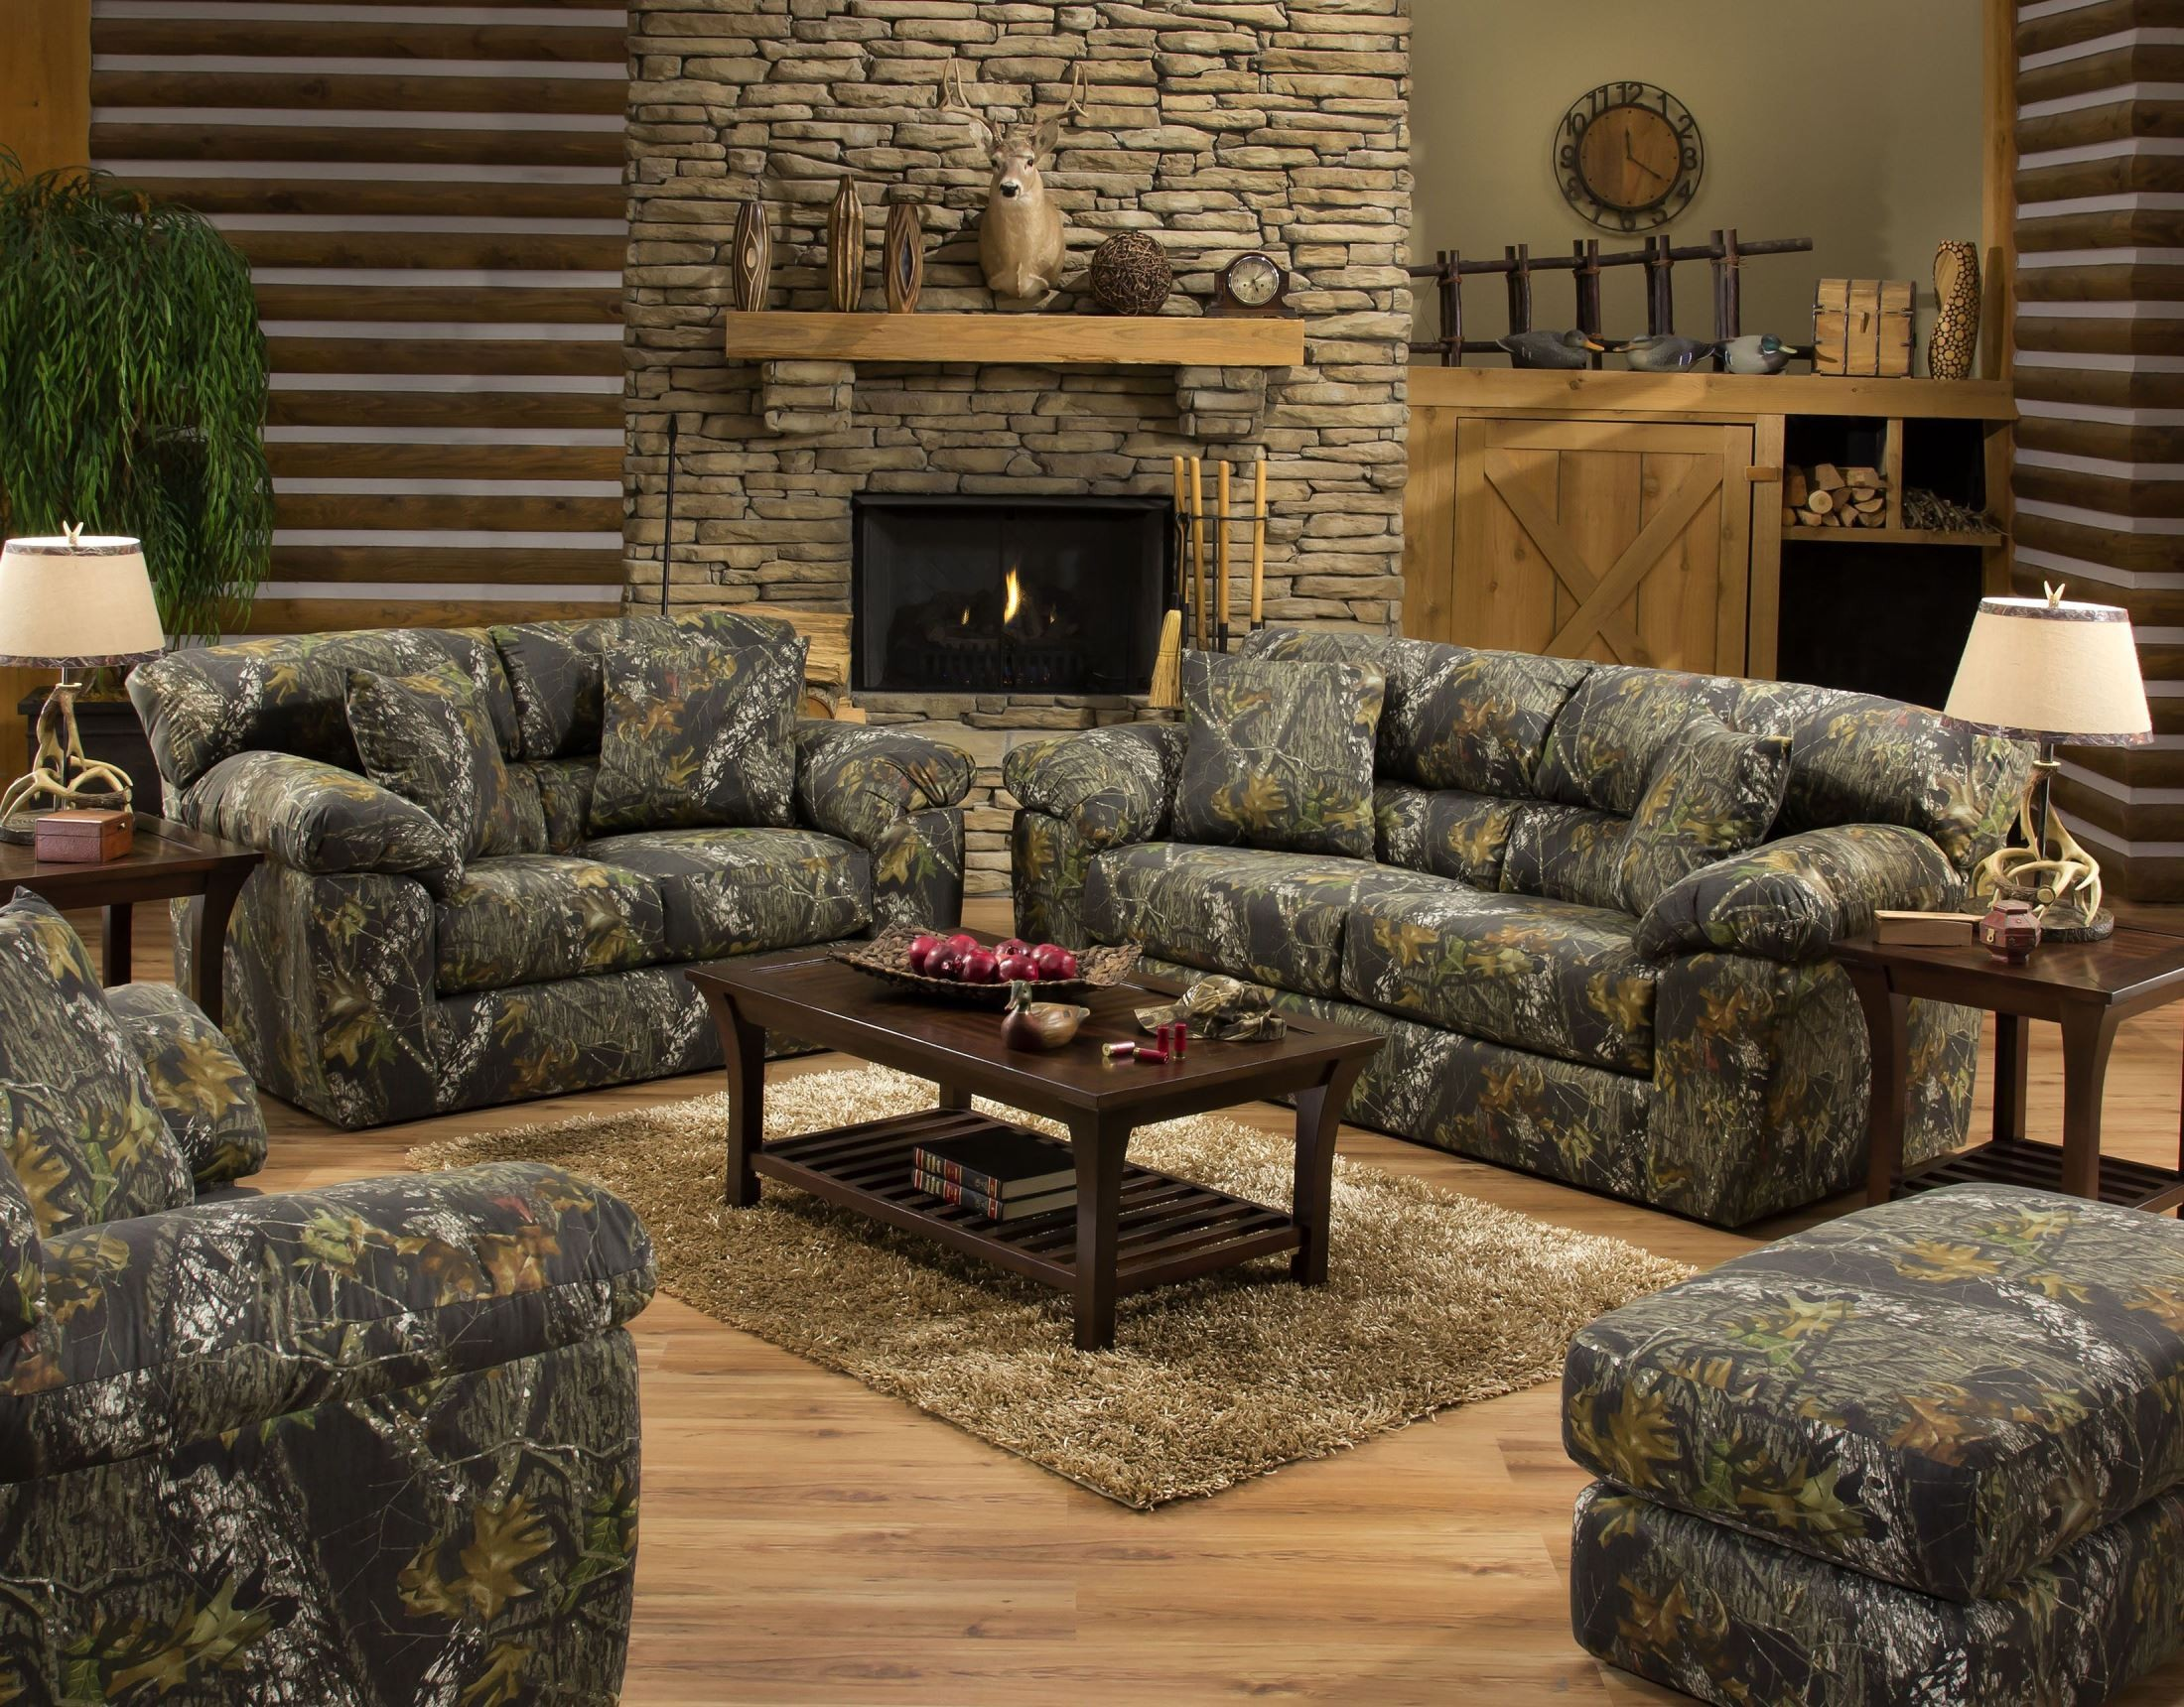 Big game mossy oak living room set from jackson for Living room designs with oak furniture